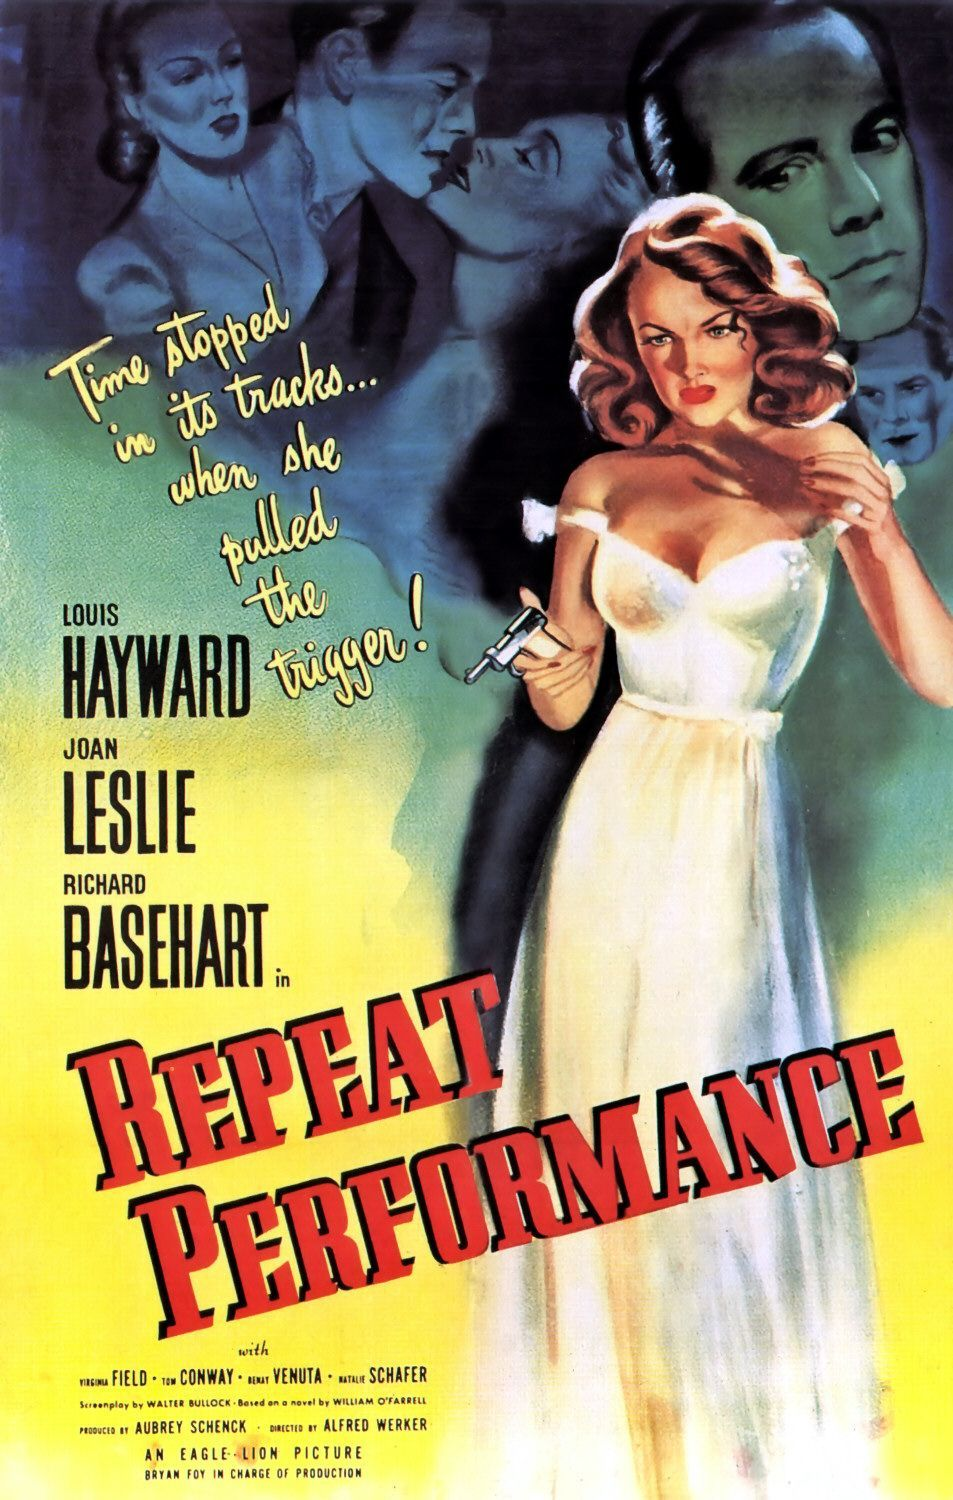 Repeat Performance Extra Large Movie Poster Image Internet Movie Poster Awards Gallery Movie Posters Old Film Posters Film Noir